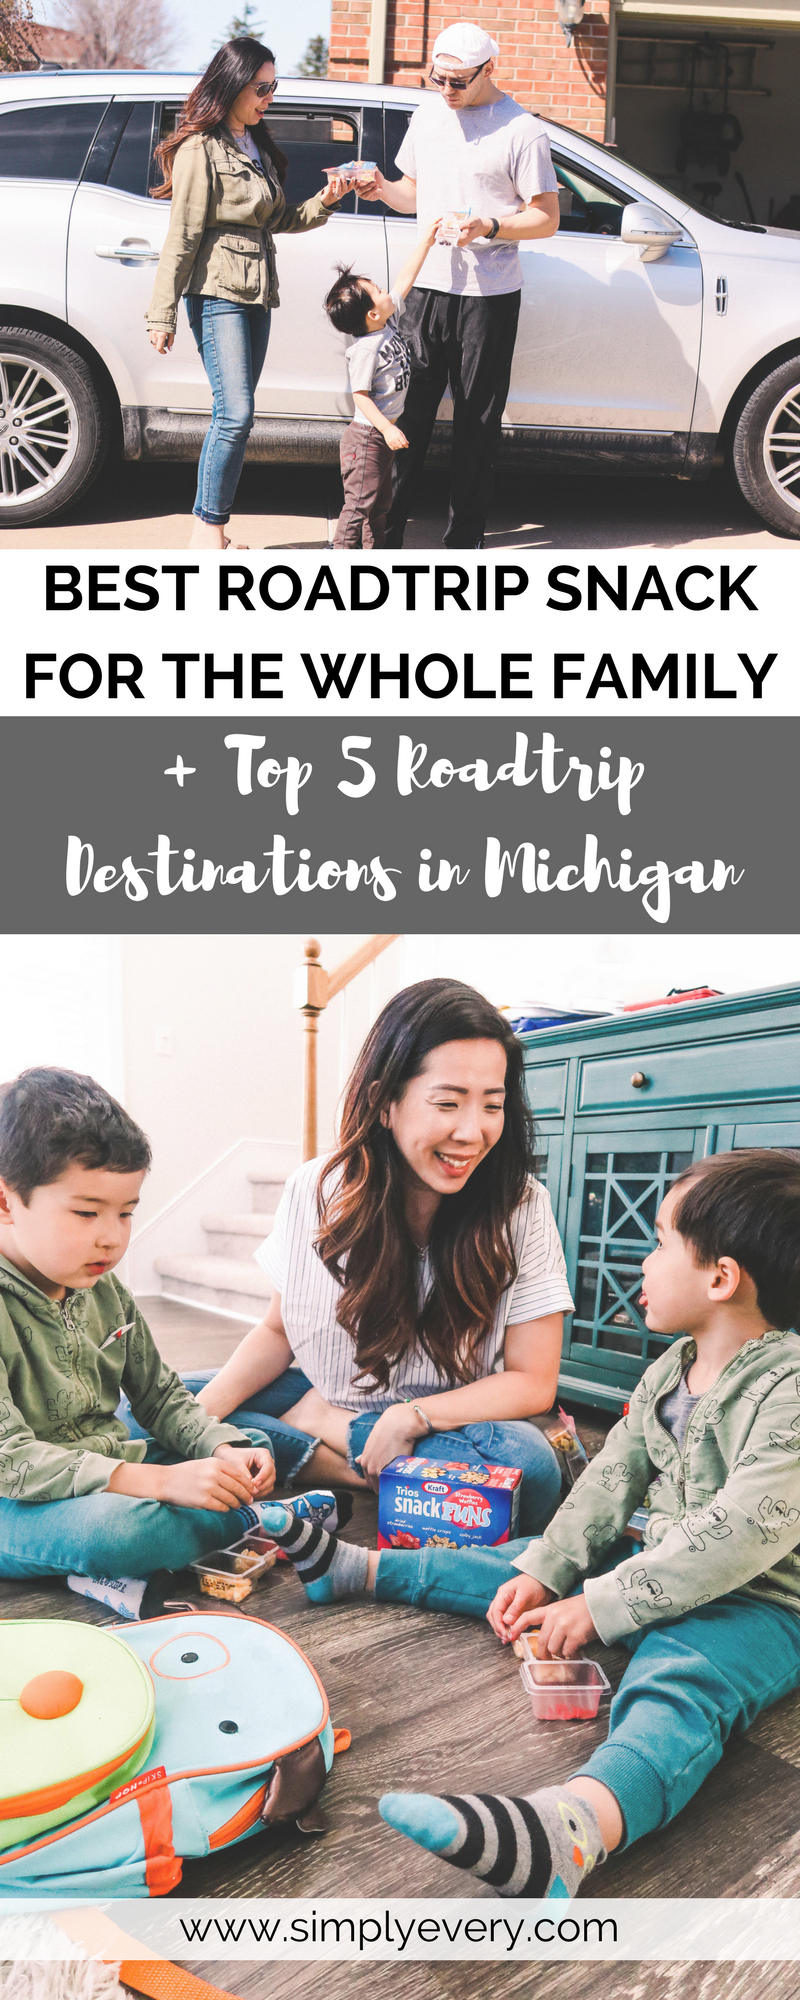 Best Road Trip Snack for the Whole Family Top 5 Michigan Destinations